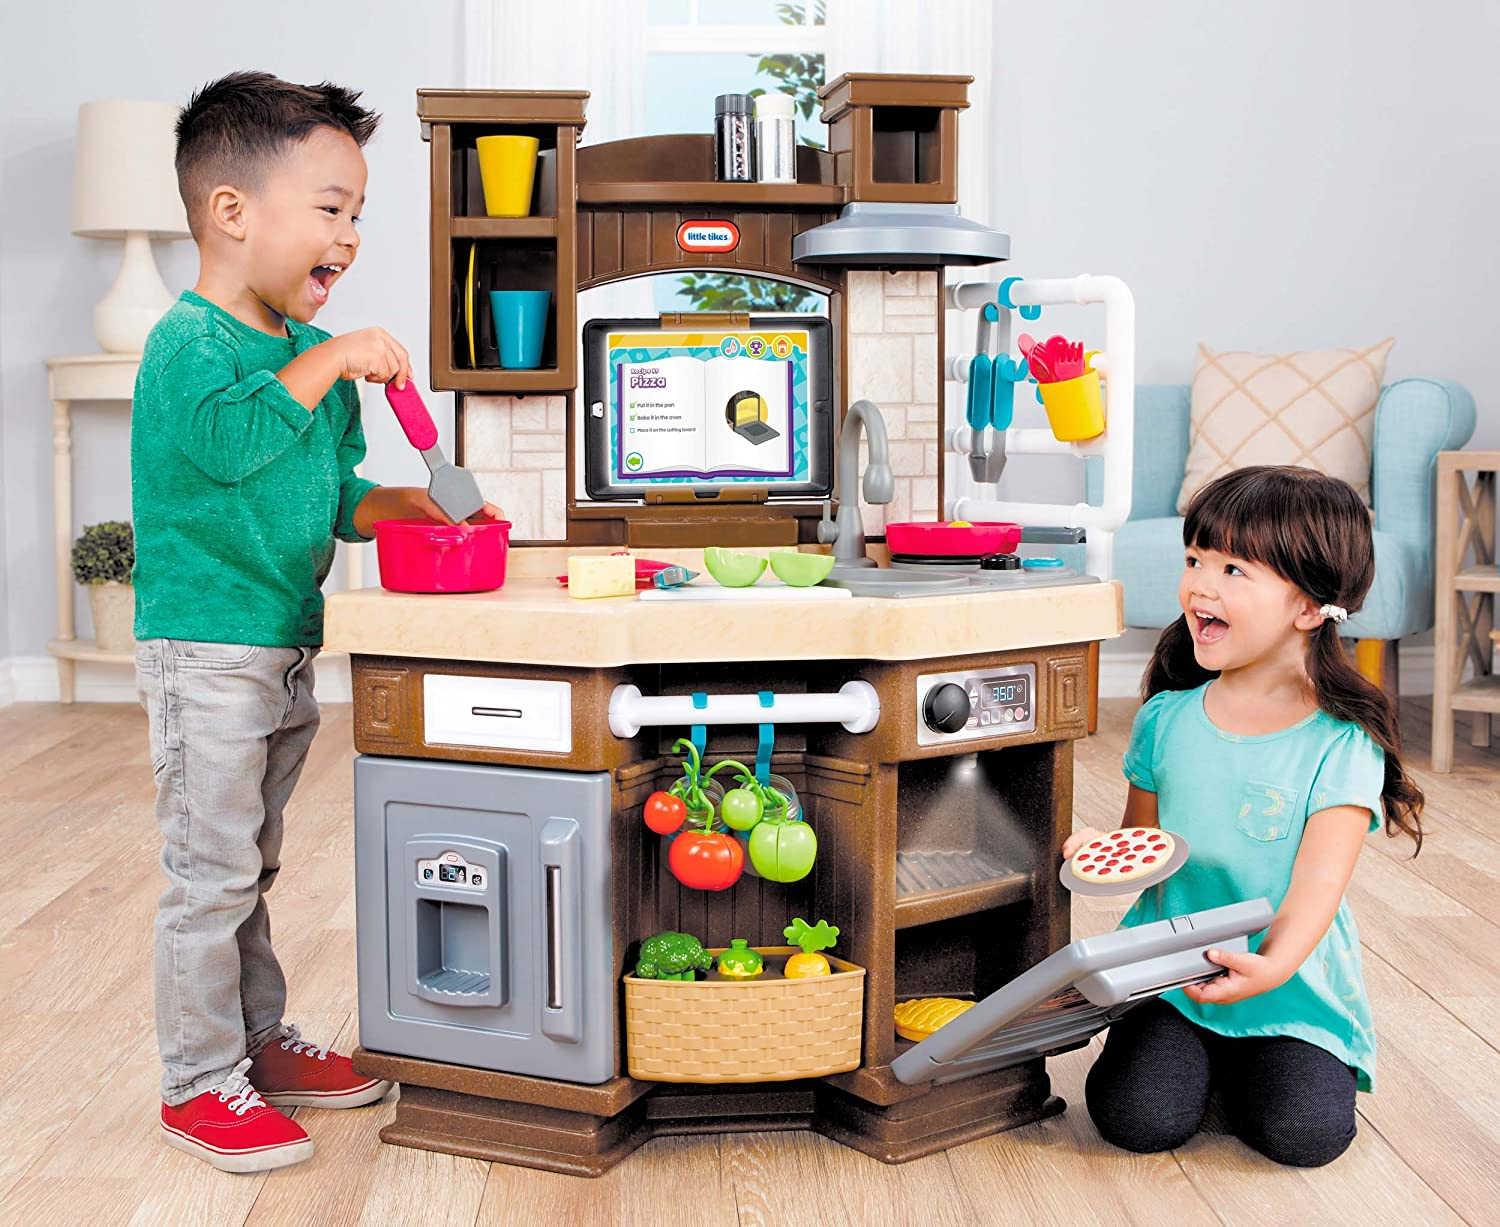 Little Tikes Cook N Learn Smart Kitchen Kitchen Food Juguetes  # Muebles Little Tikes